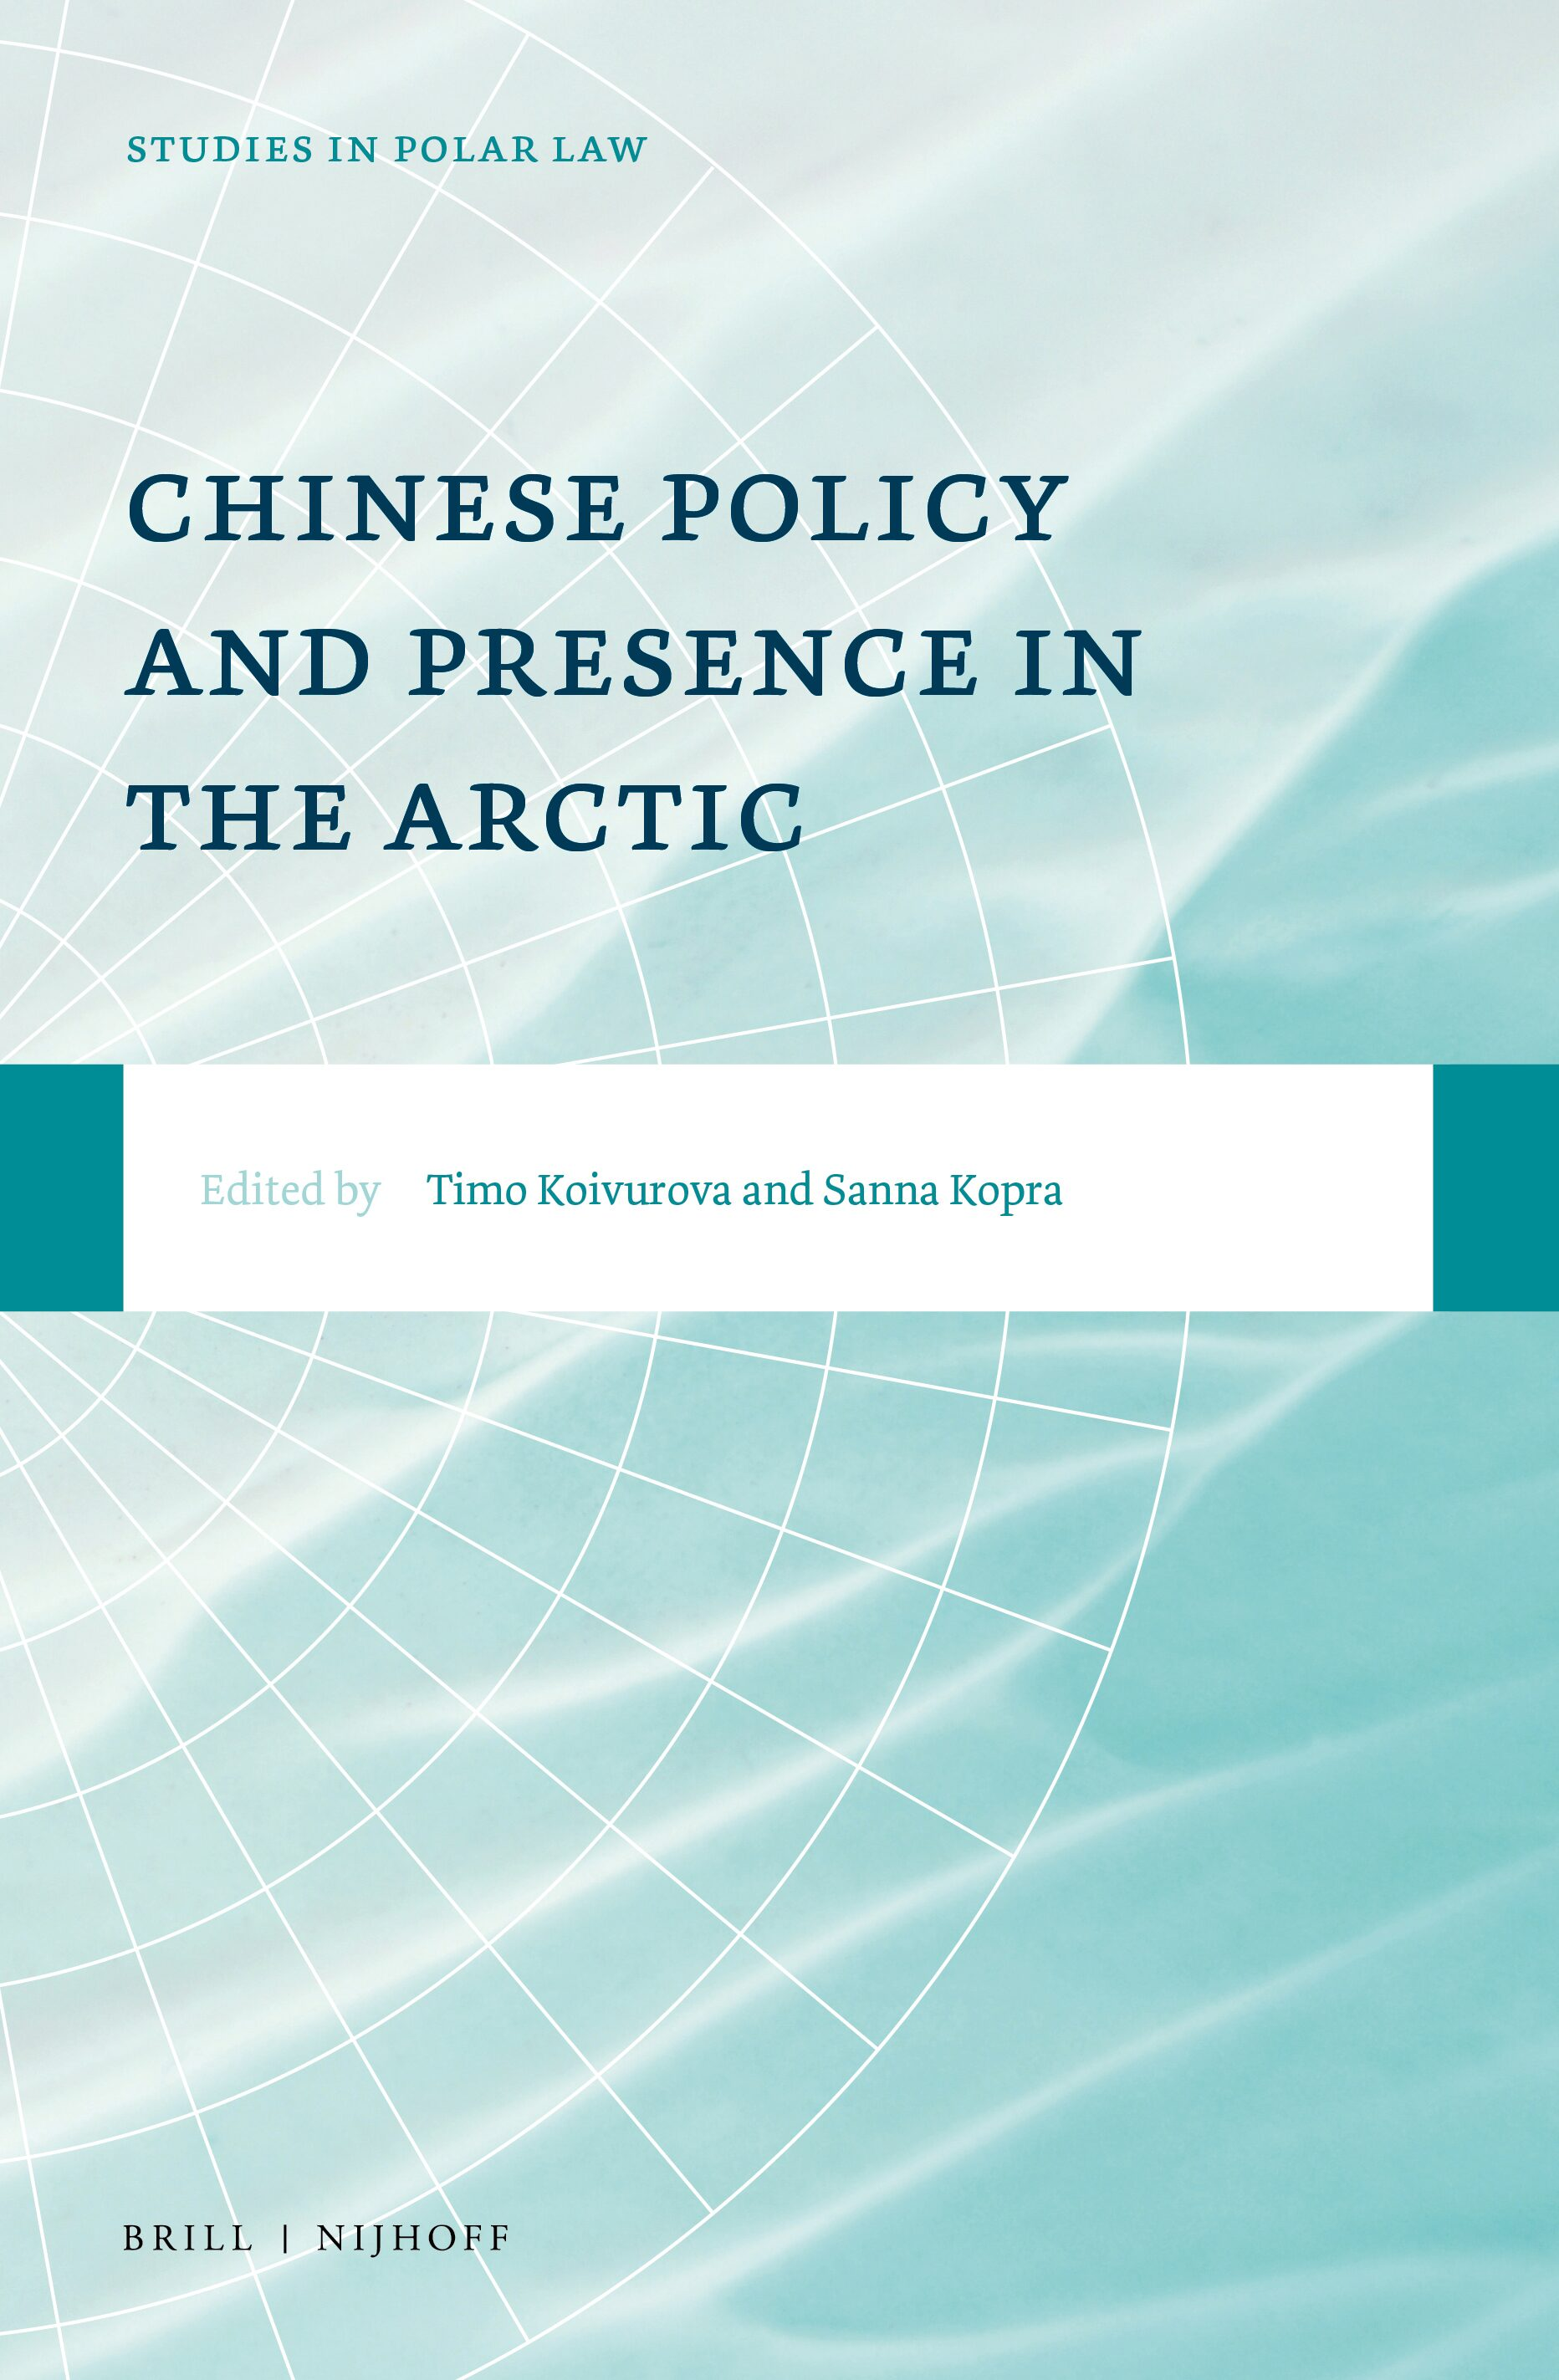 Chinese Policy and Presence in the Arctic | Brill